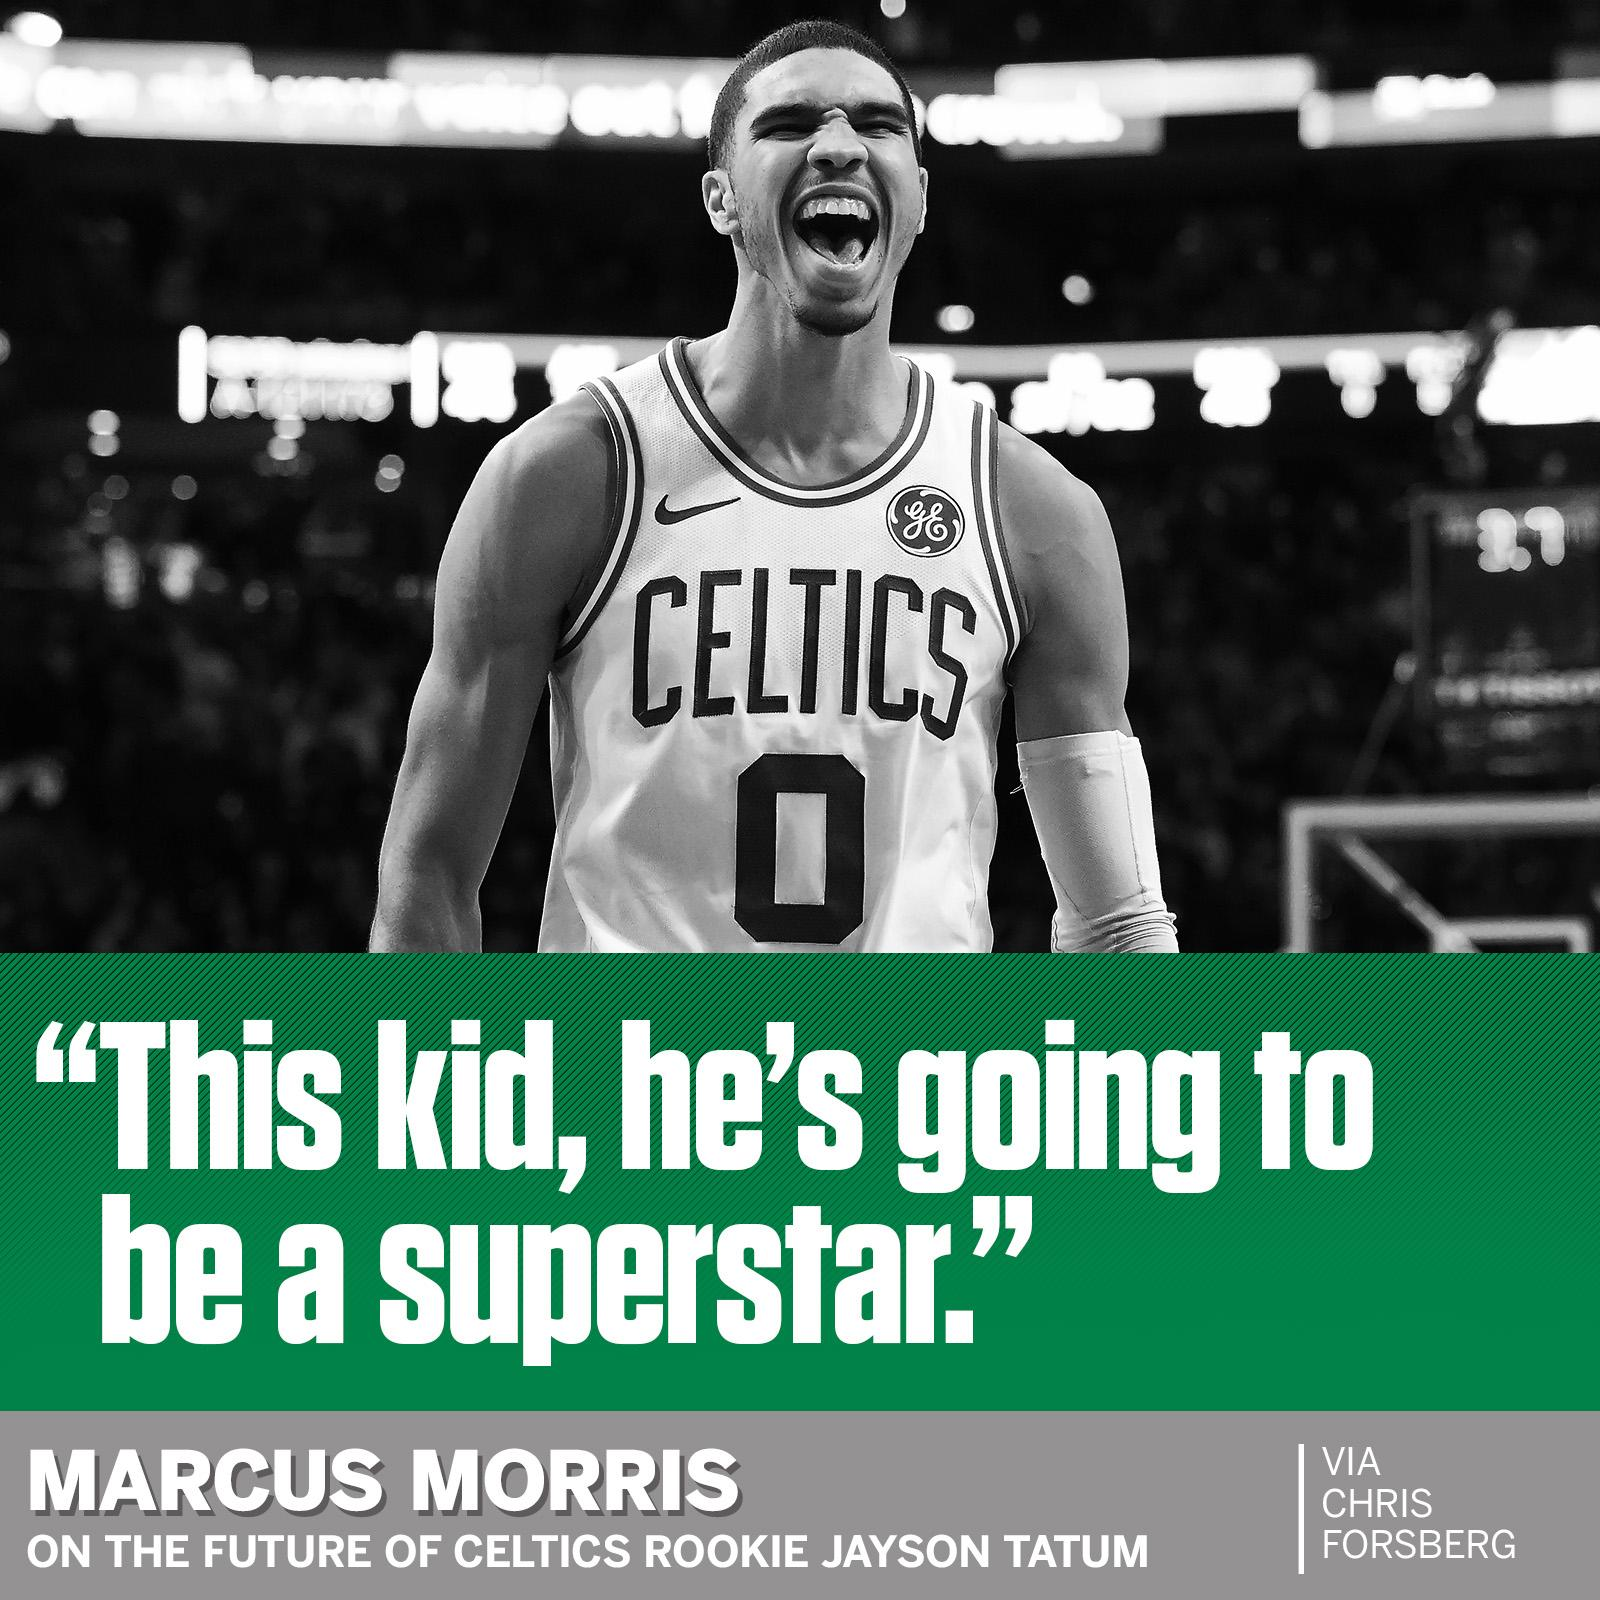 How high is Jayson Tatum's ceiling?   His teammate has an answer. https://t.co/1QdsL2AoMx